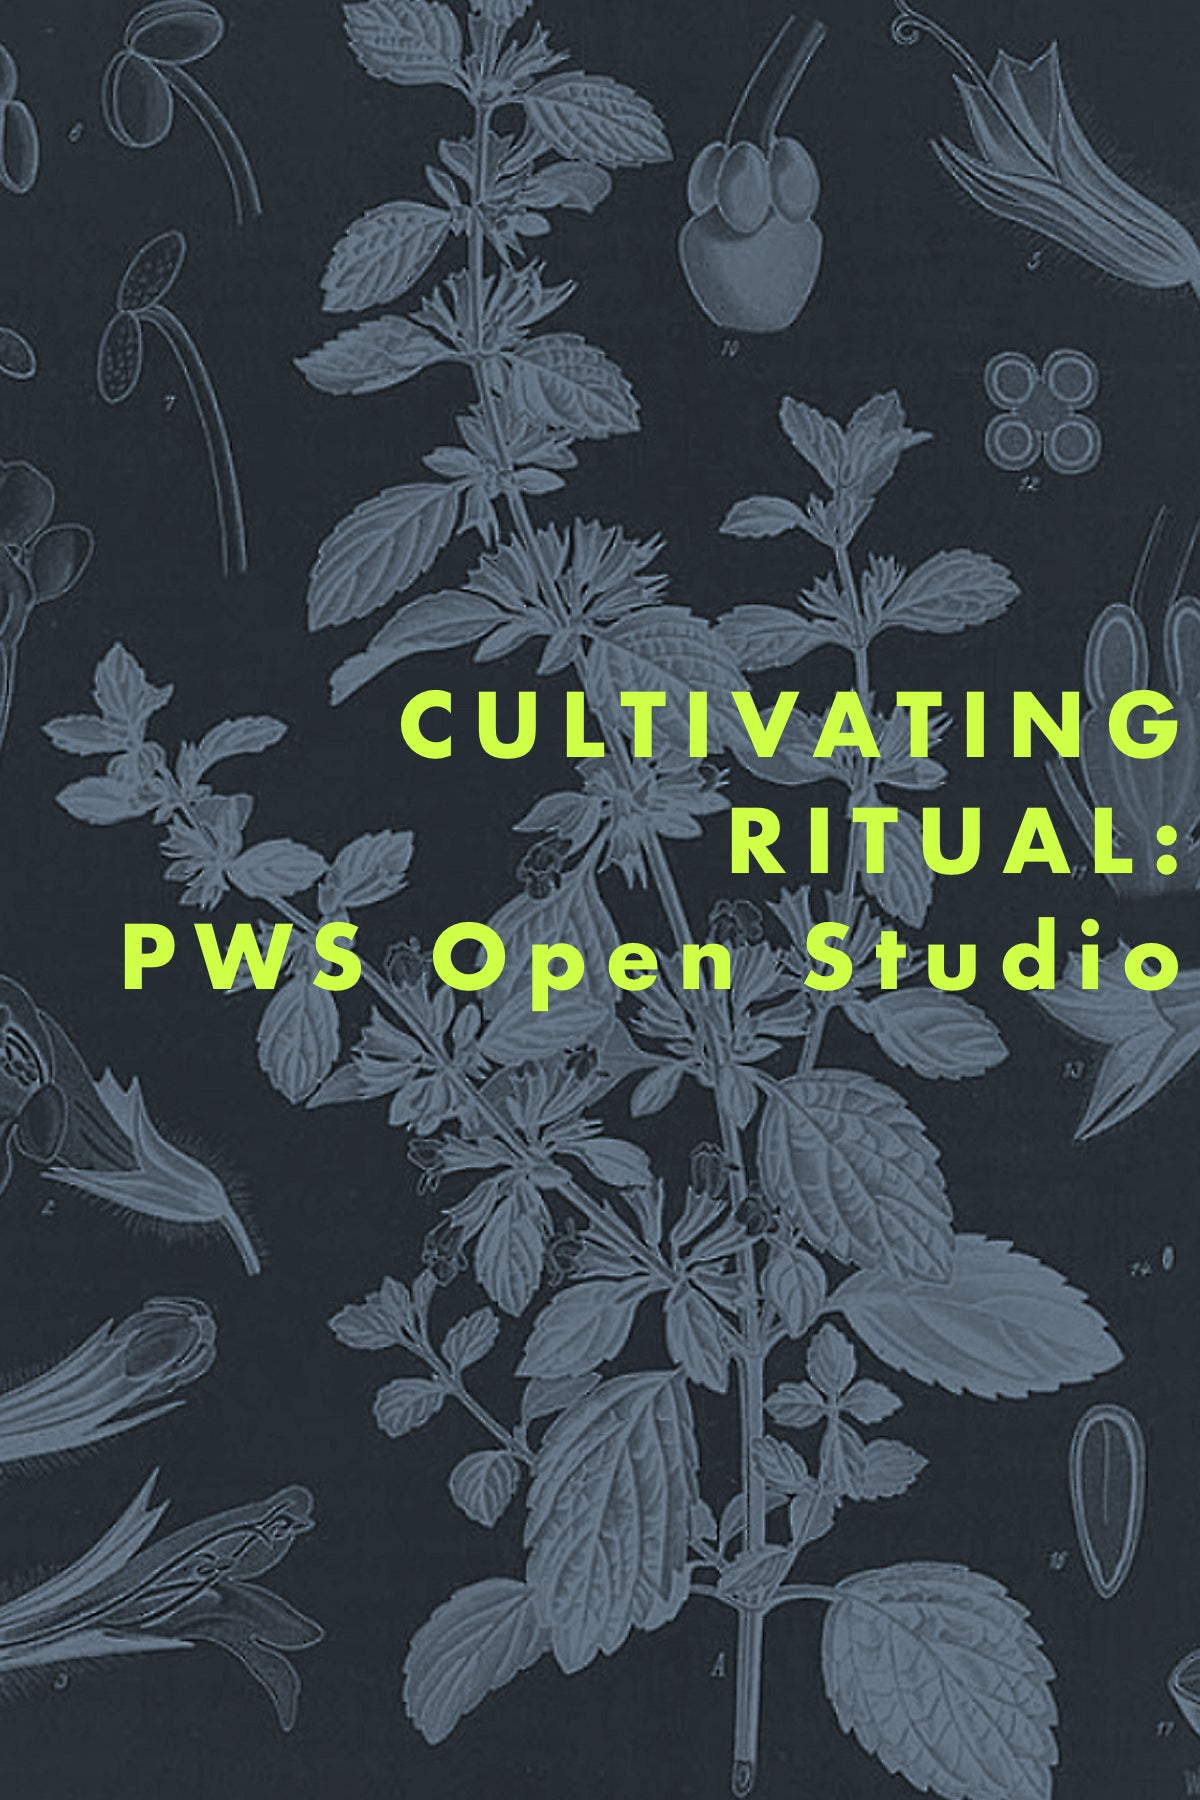 CULTIVATING RITUAL: PWS Open Studio